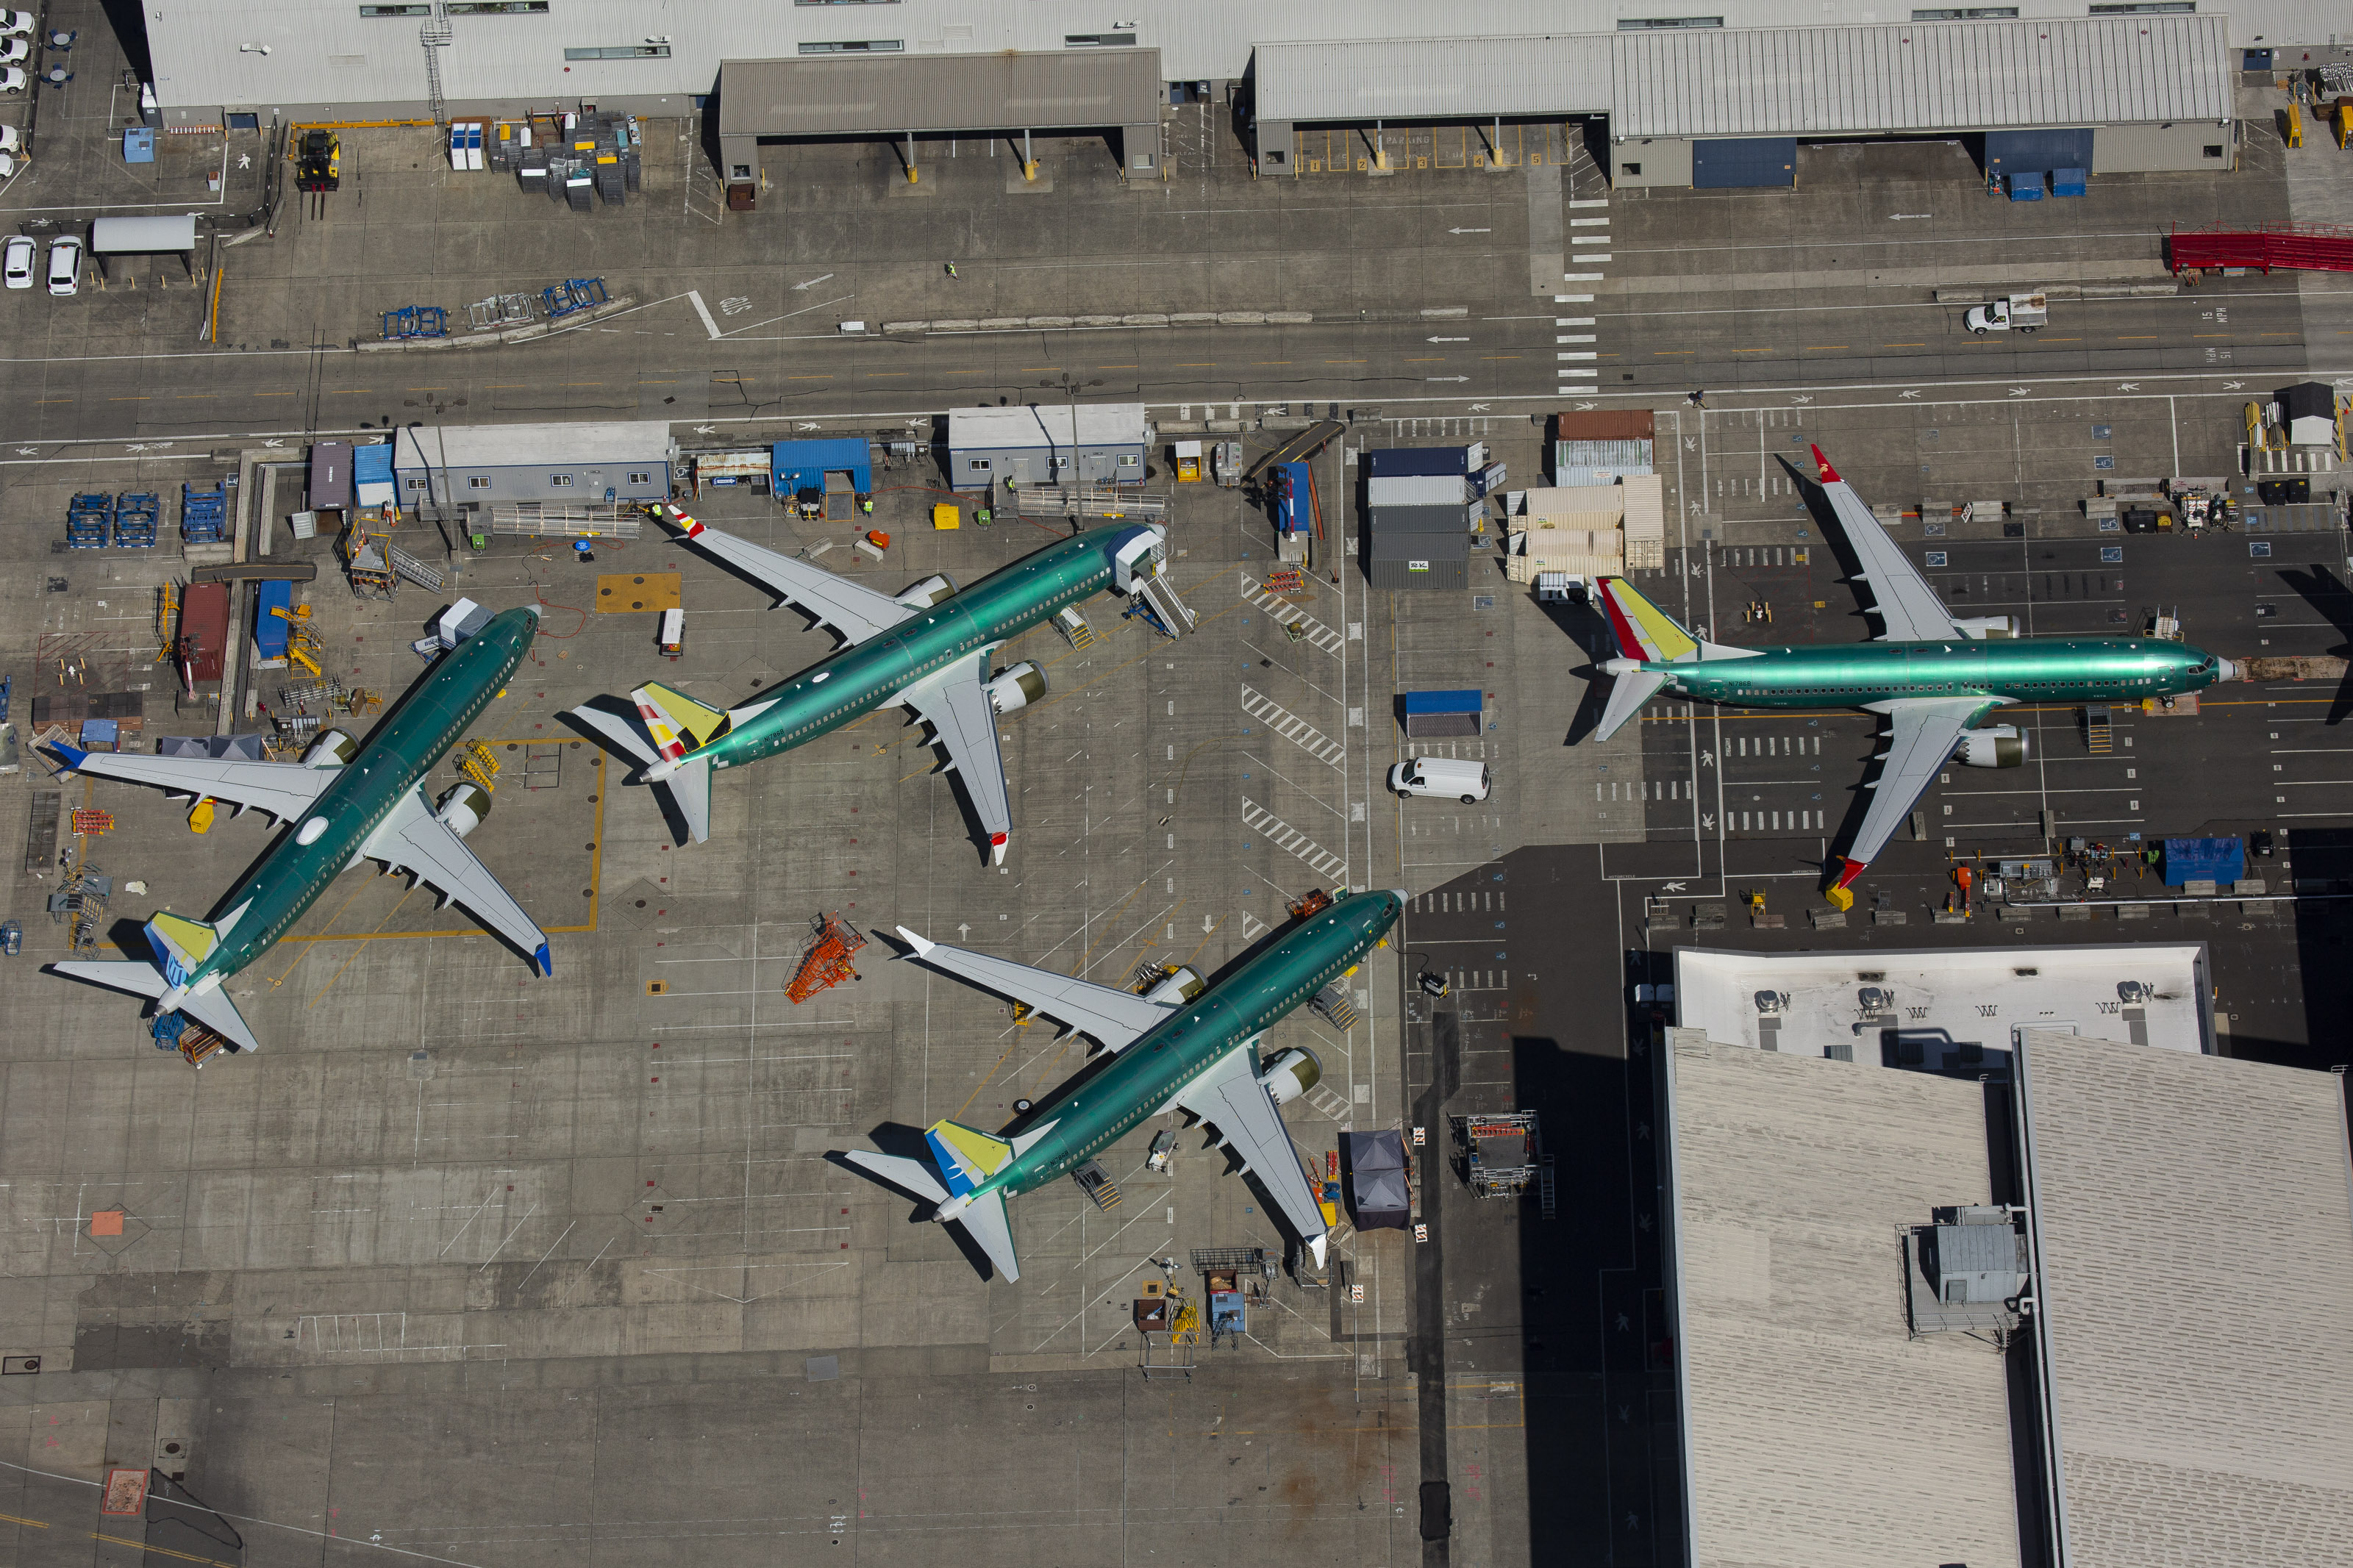 Ryanair expects to see Boeing 737 Max crash jet back in UK skies by March next year